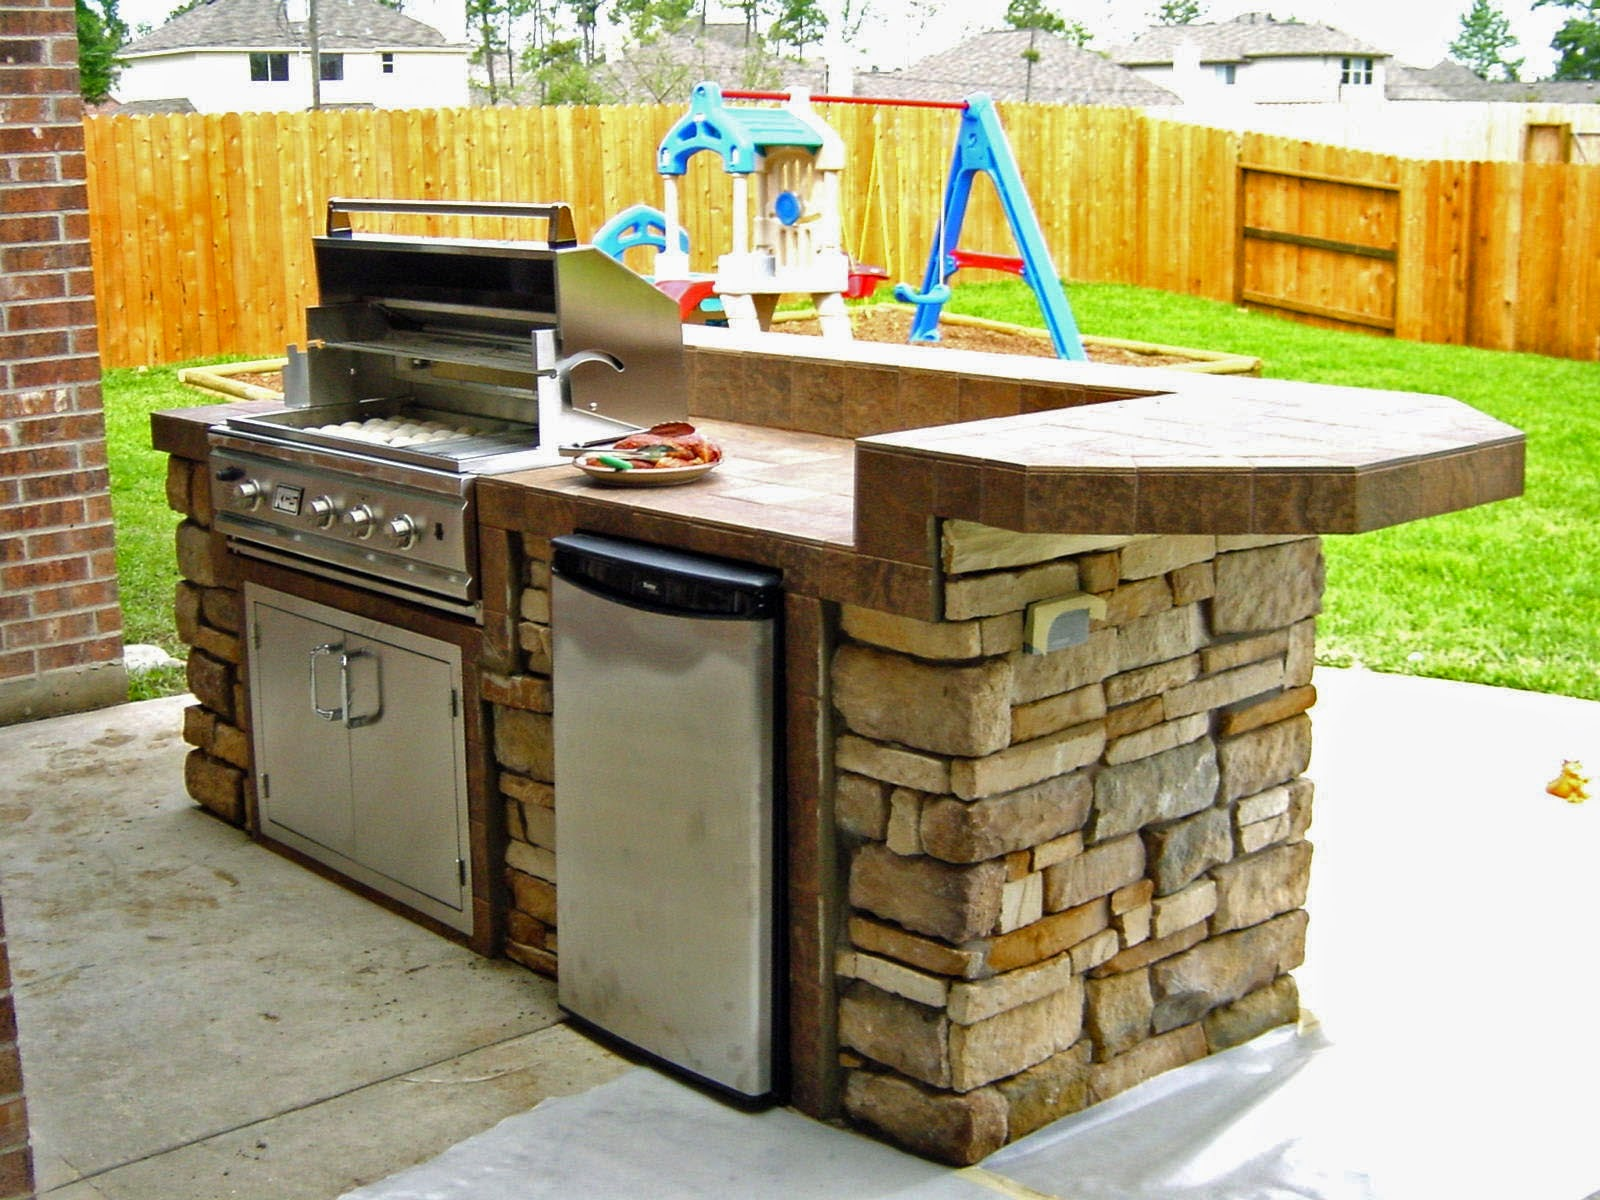 mini kitchen storage ideas html with Simple Outdoor Kitchen Design Ideas on Basement Under Stairs Space Ideas also Simple Outdoor Kitchen Design Ideas in addition 2f5f872197f4764c U Shaped One Story House U Shaped House Plans together with 11 9 X 9 3 Ft 3 6 X 2 8m Wooden Gazebo Pavilion With Five Bench Seats moreover Kenna 5 Light Mini Chandelier Lrfy5575.